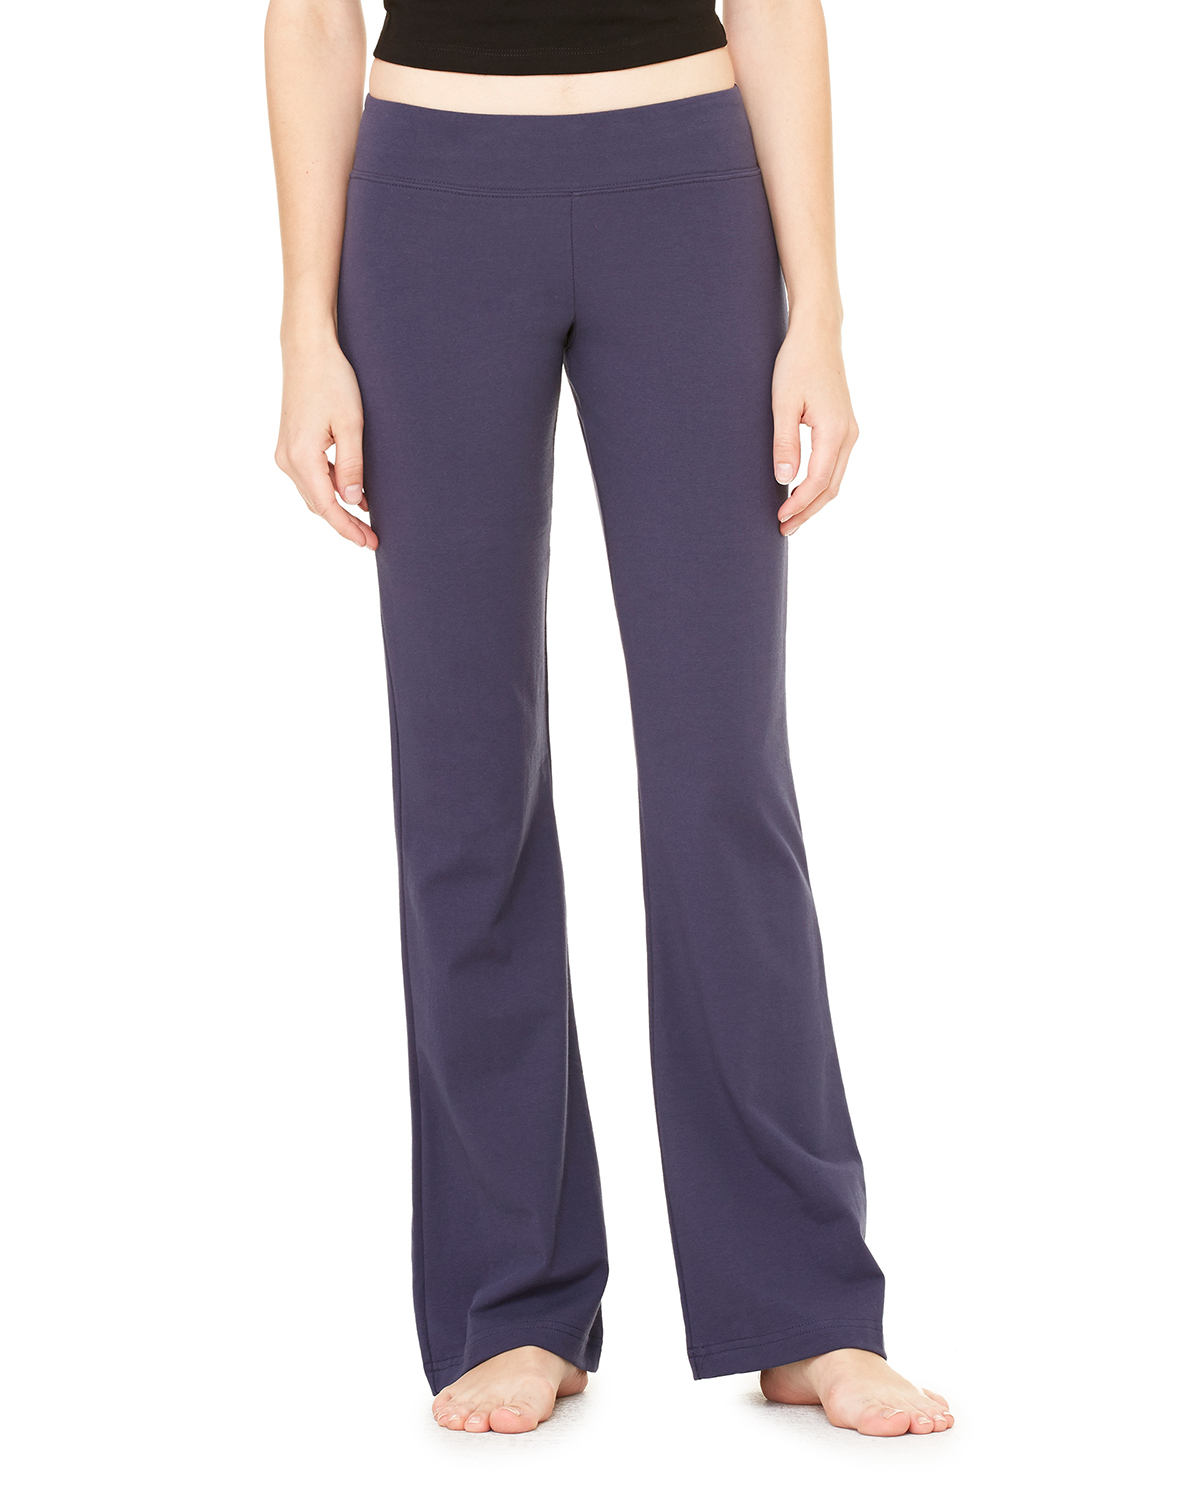 Canvas 810 - Ladies' Cotton Spandex Fitness Pant